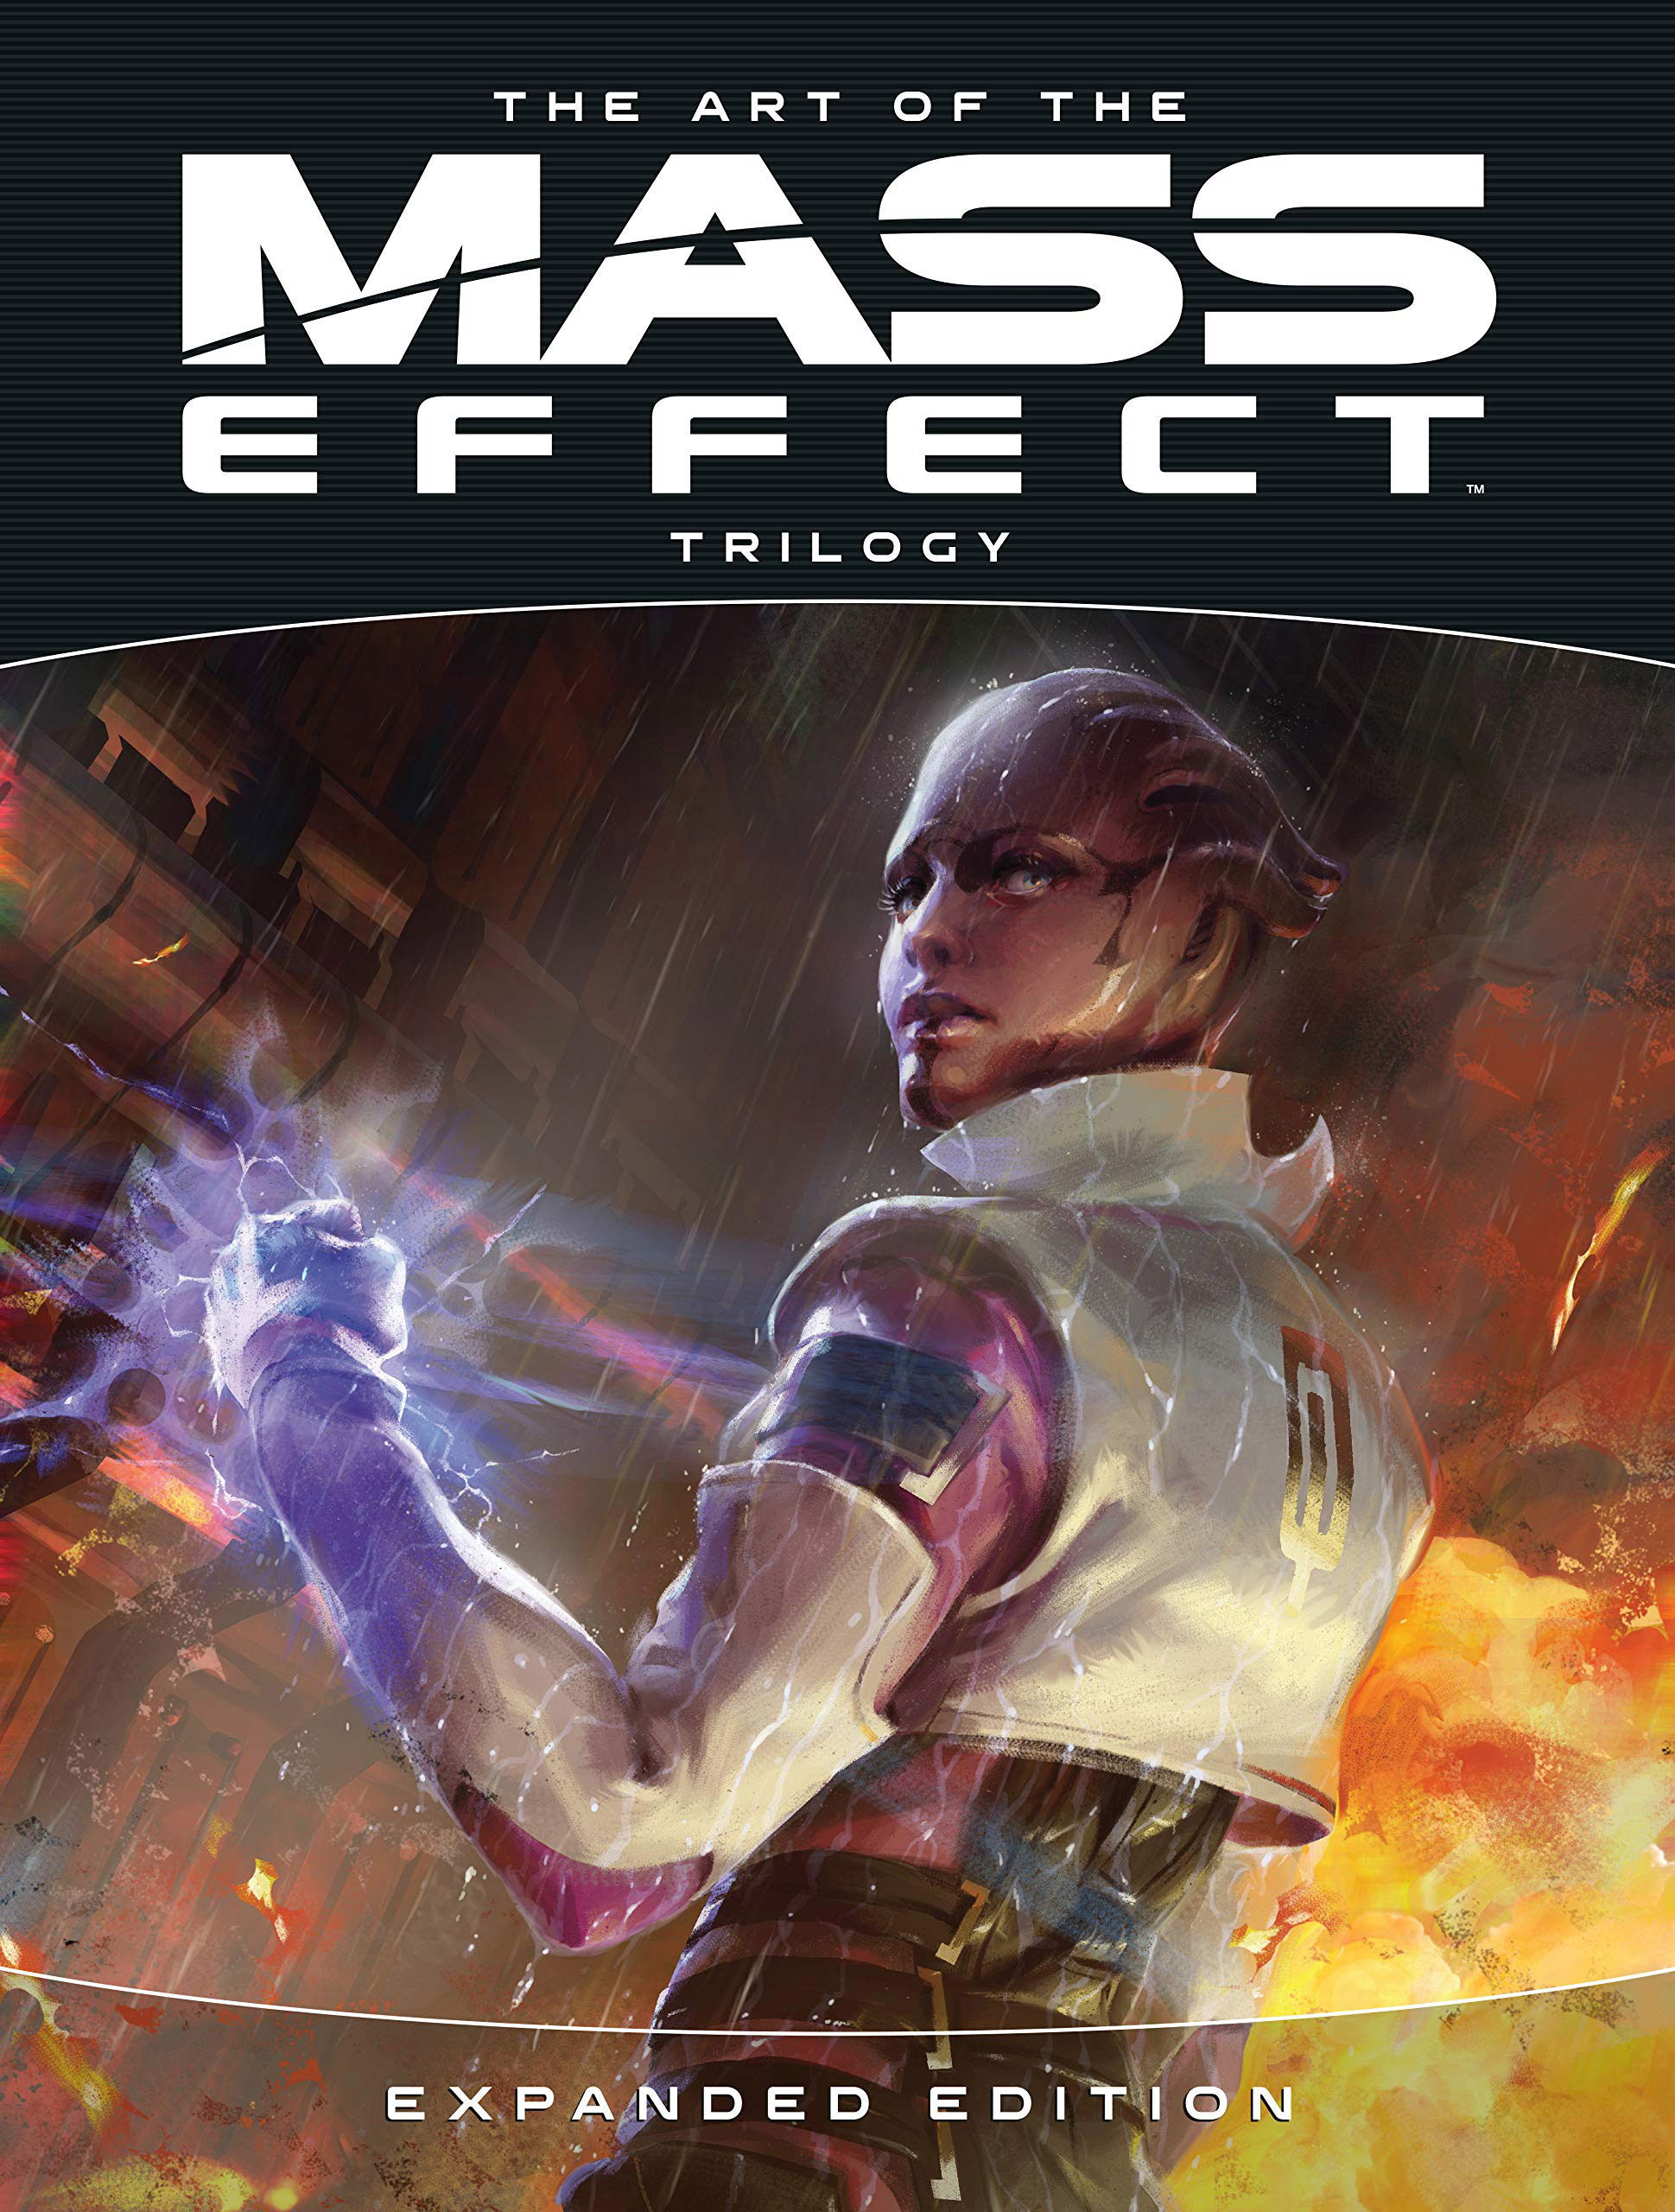 The Art of the Mass Effect Trilogy Book Review